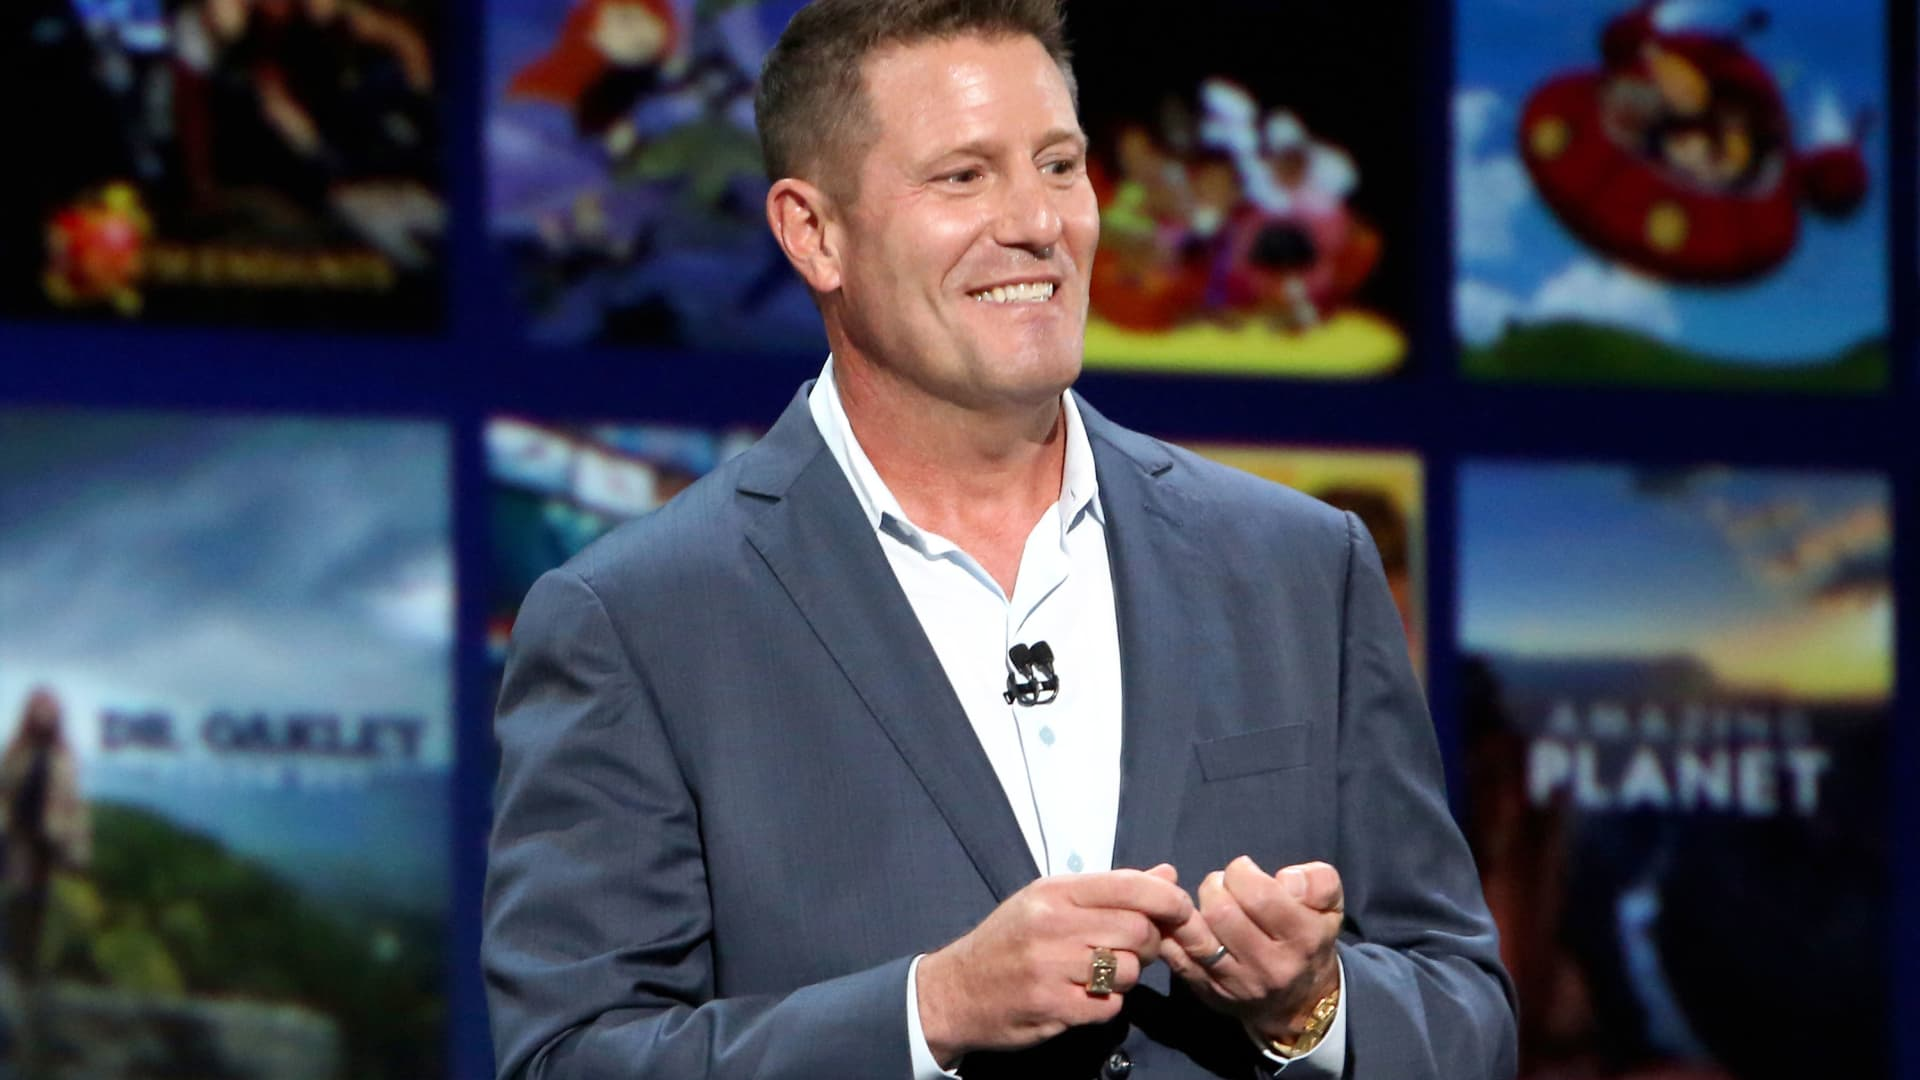 Chairman of Direct-to-Consumer & International division of The Walt Disney Company Kevin Mayer took part today in the Disney+ Showcase at Disney's D23 EXPO 2019 in Anaheim, Calif., August 23, 2019.